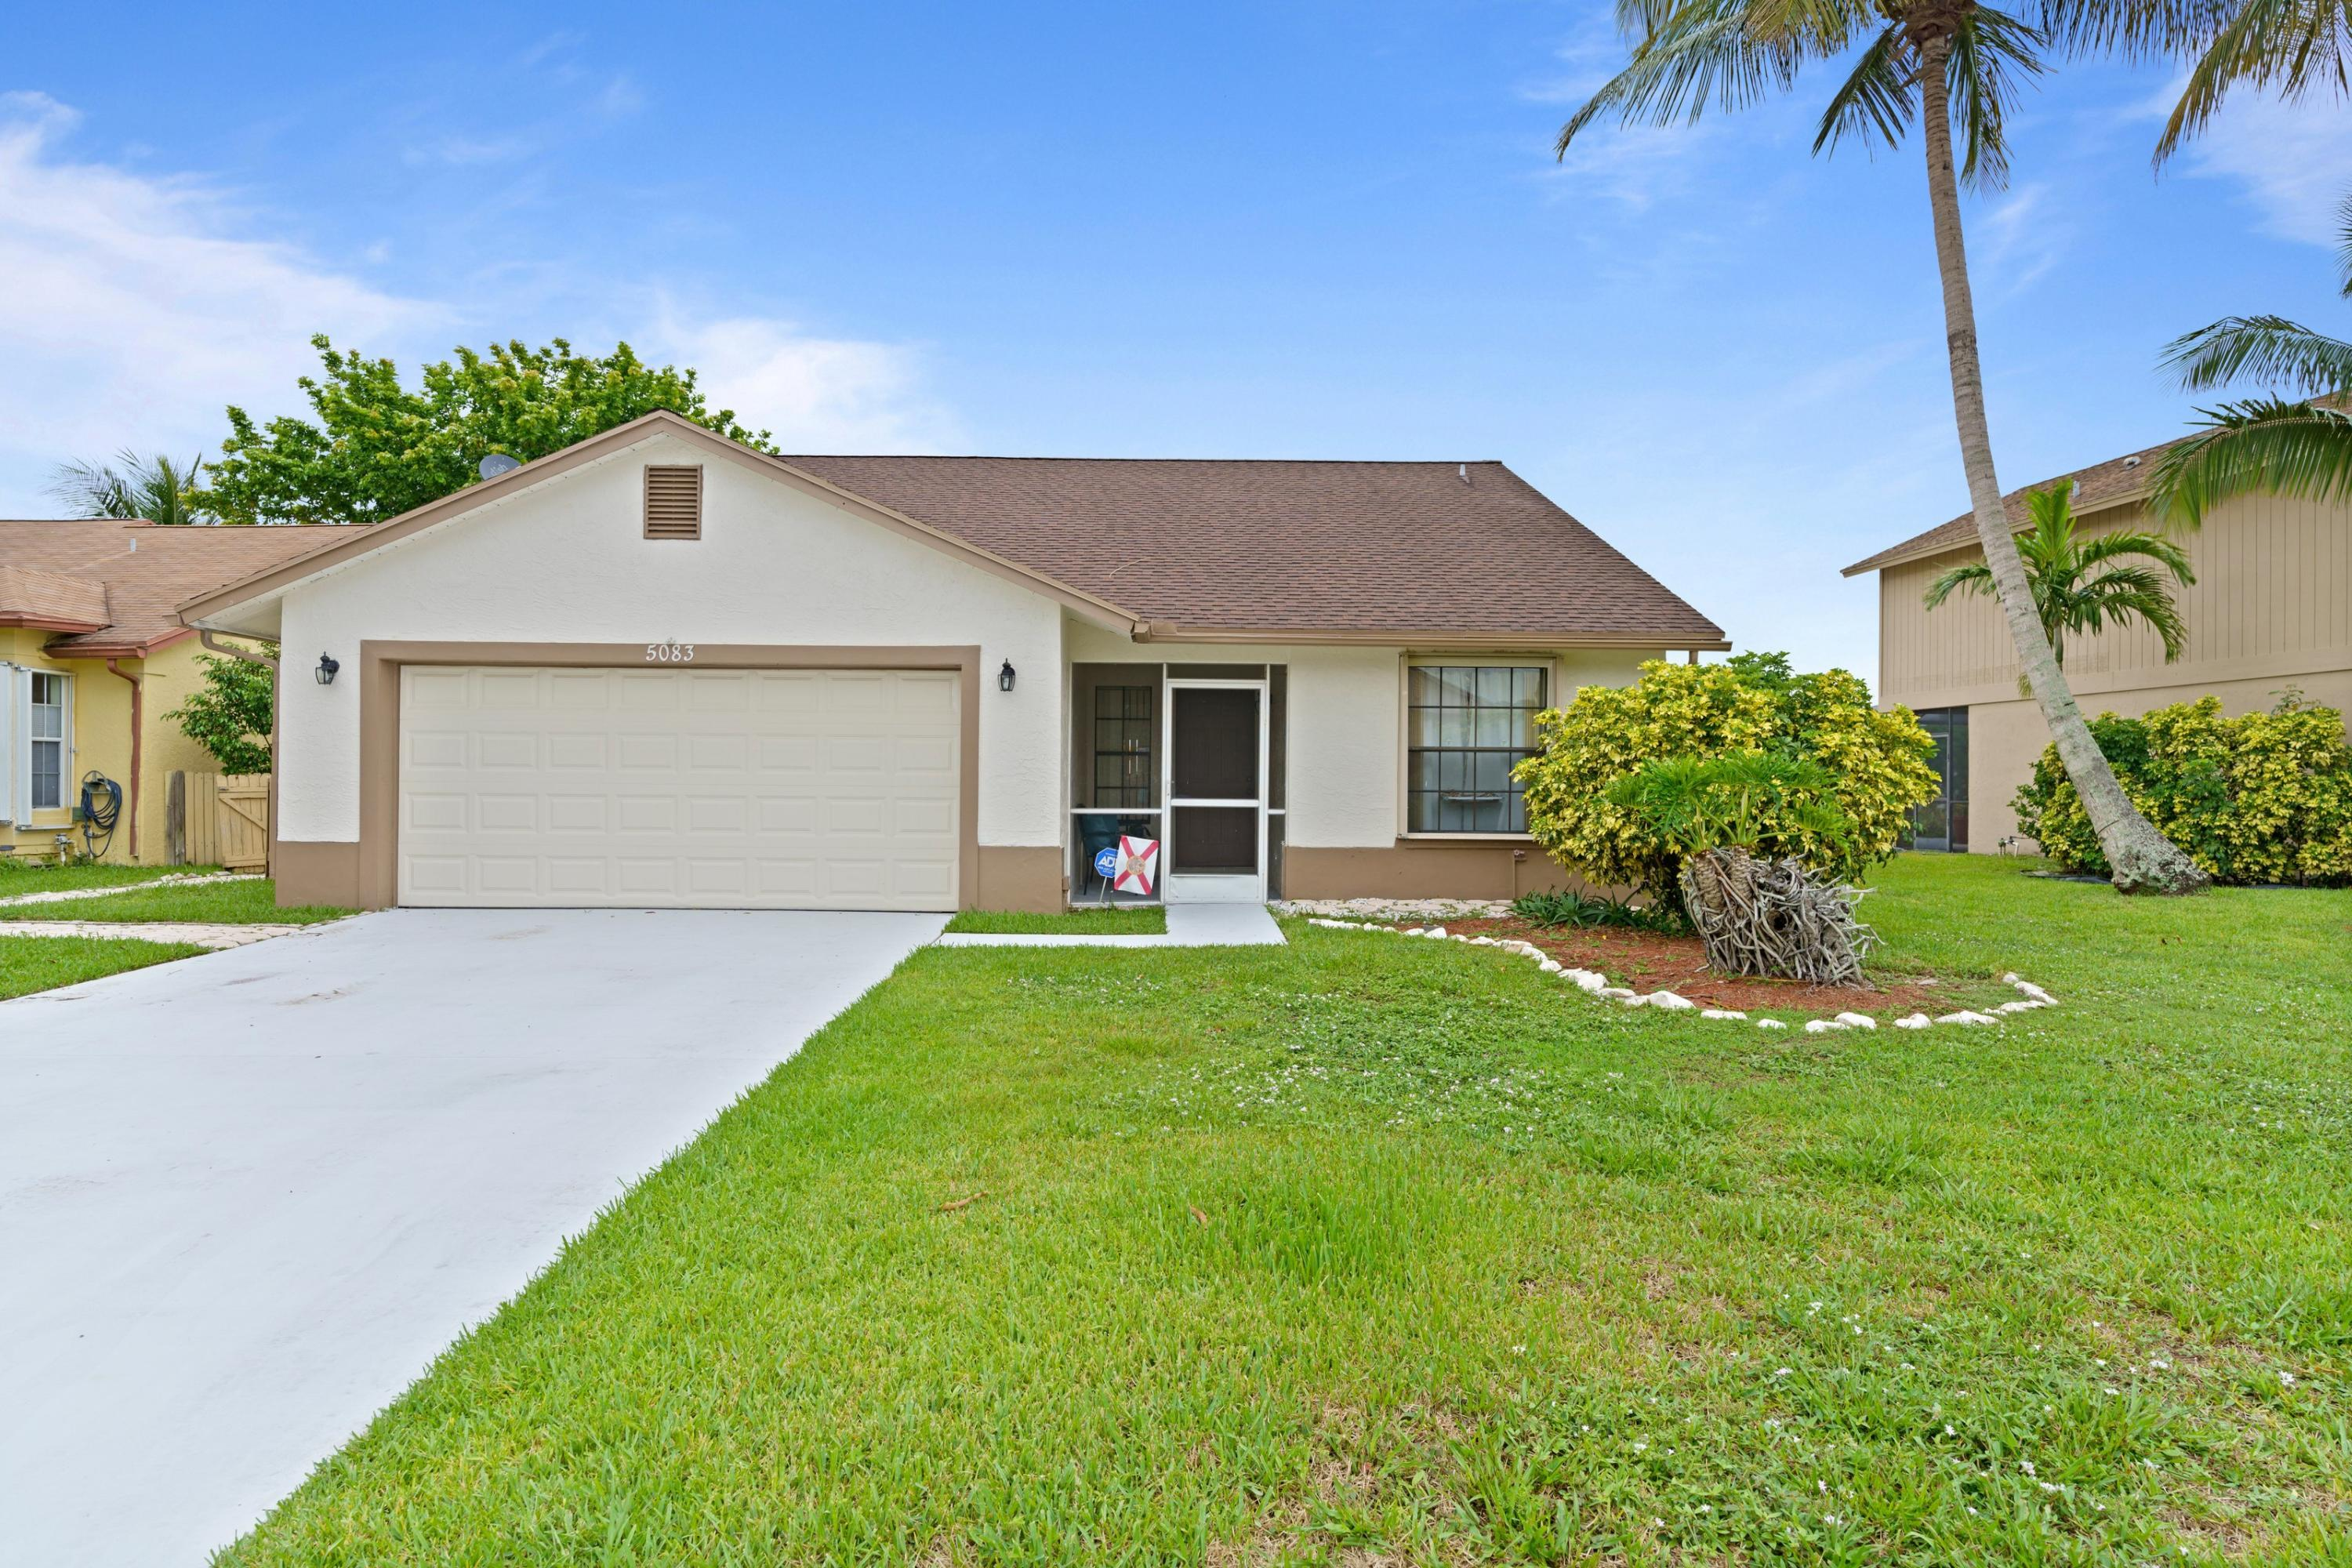 5083  Willow Pond Road  For Sale 10722252, FL